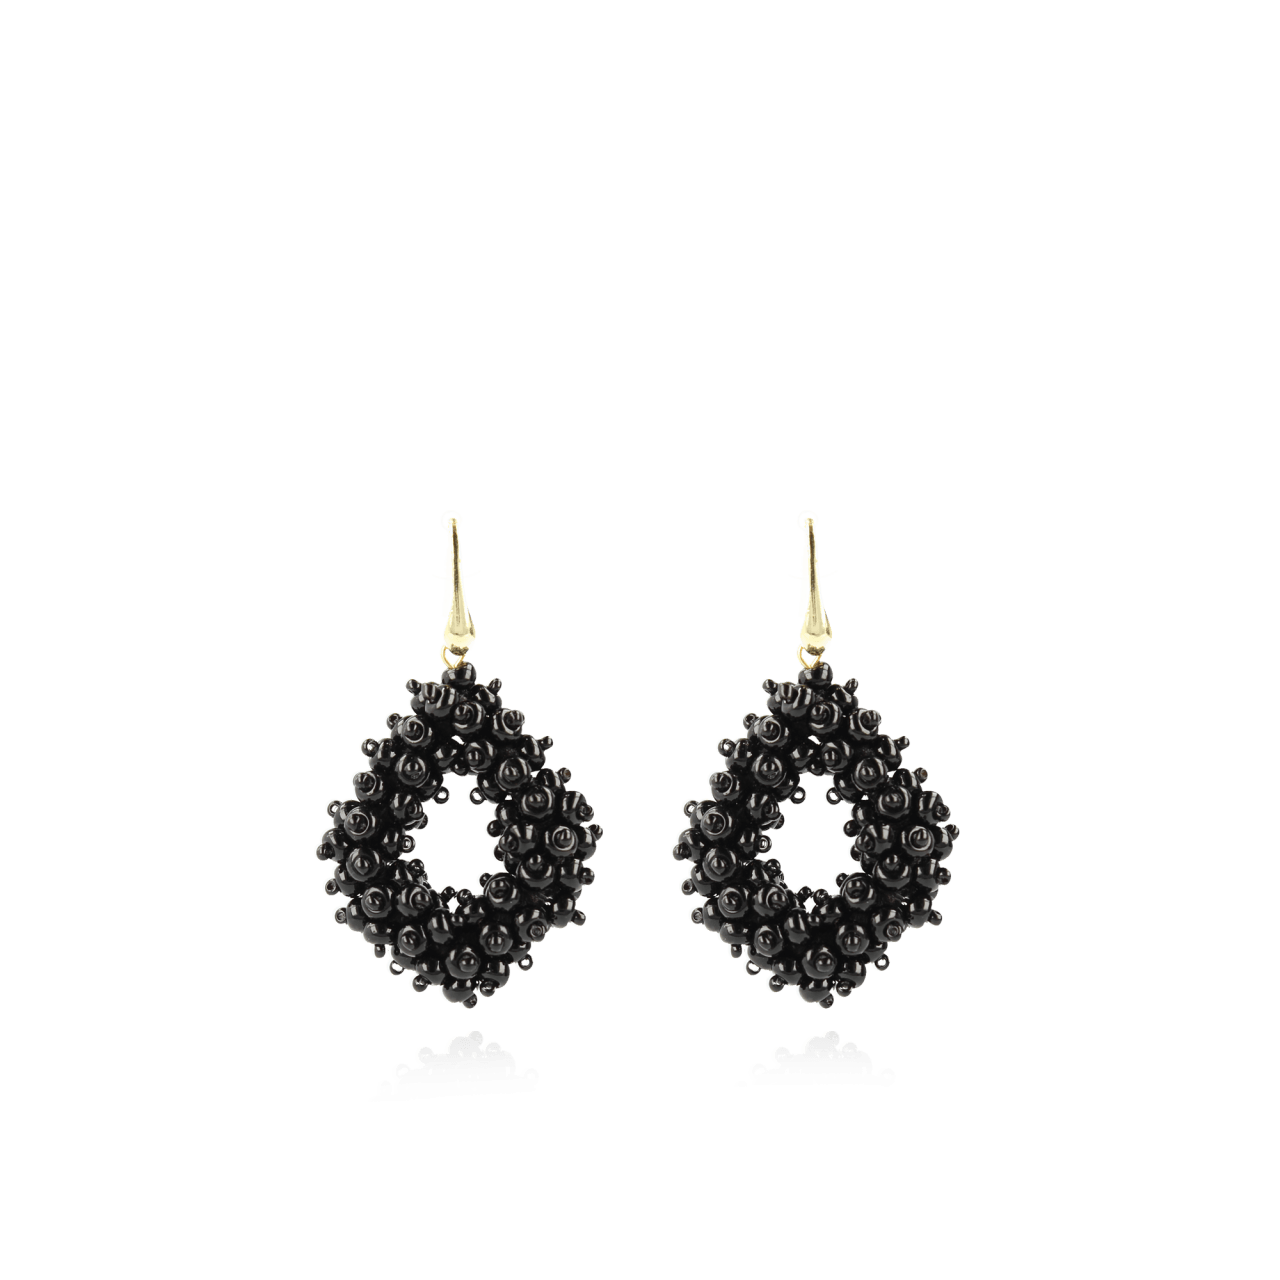 Black Holly double stones glassberry ace M earrings